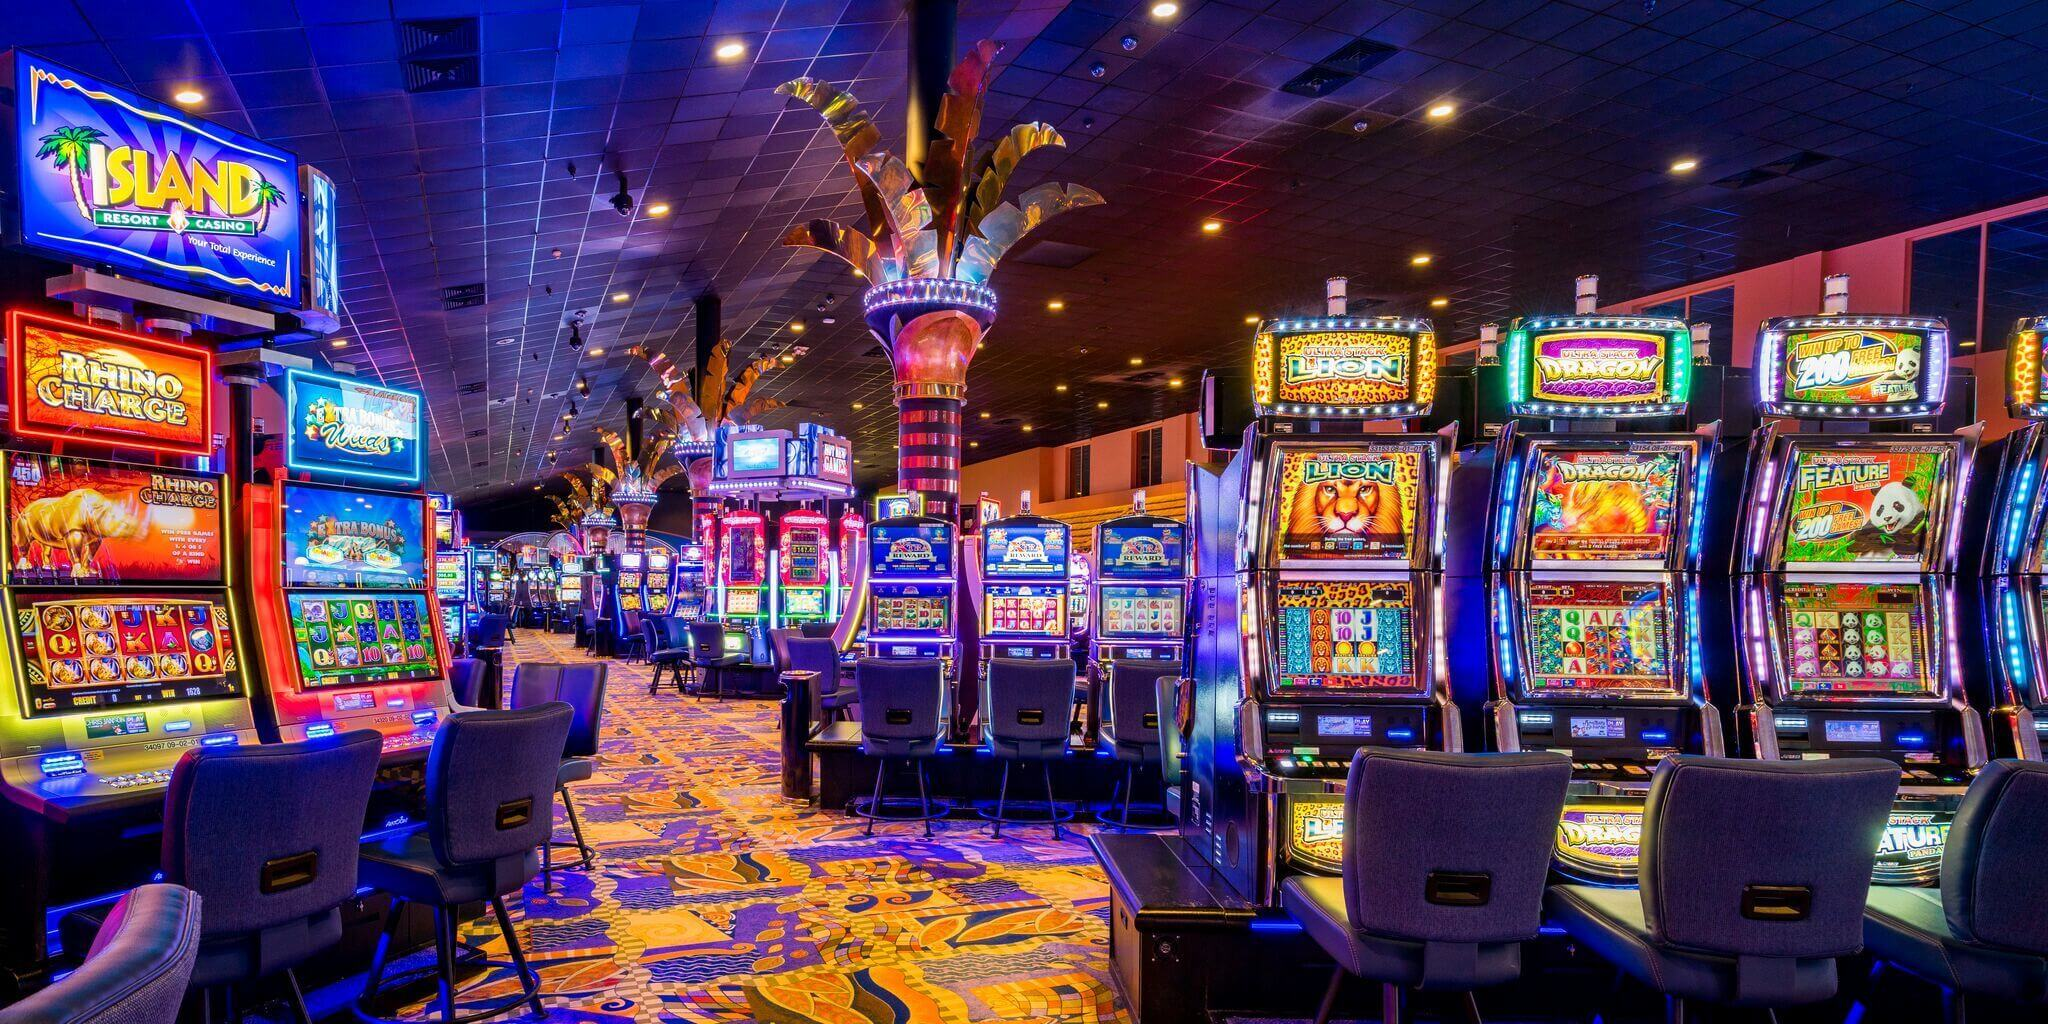 Slot gambling site with some of the best game choices